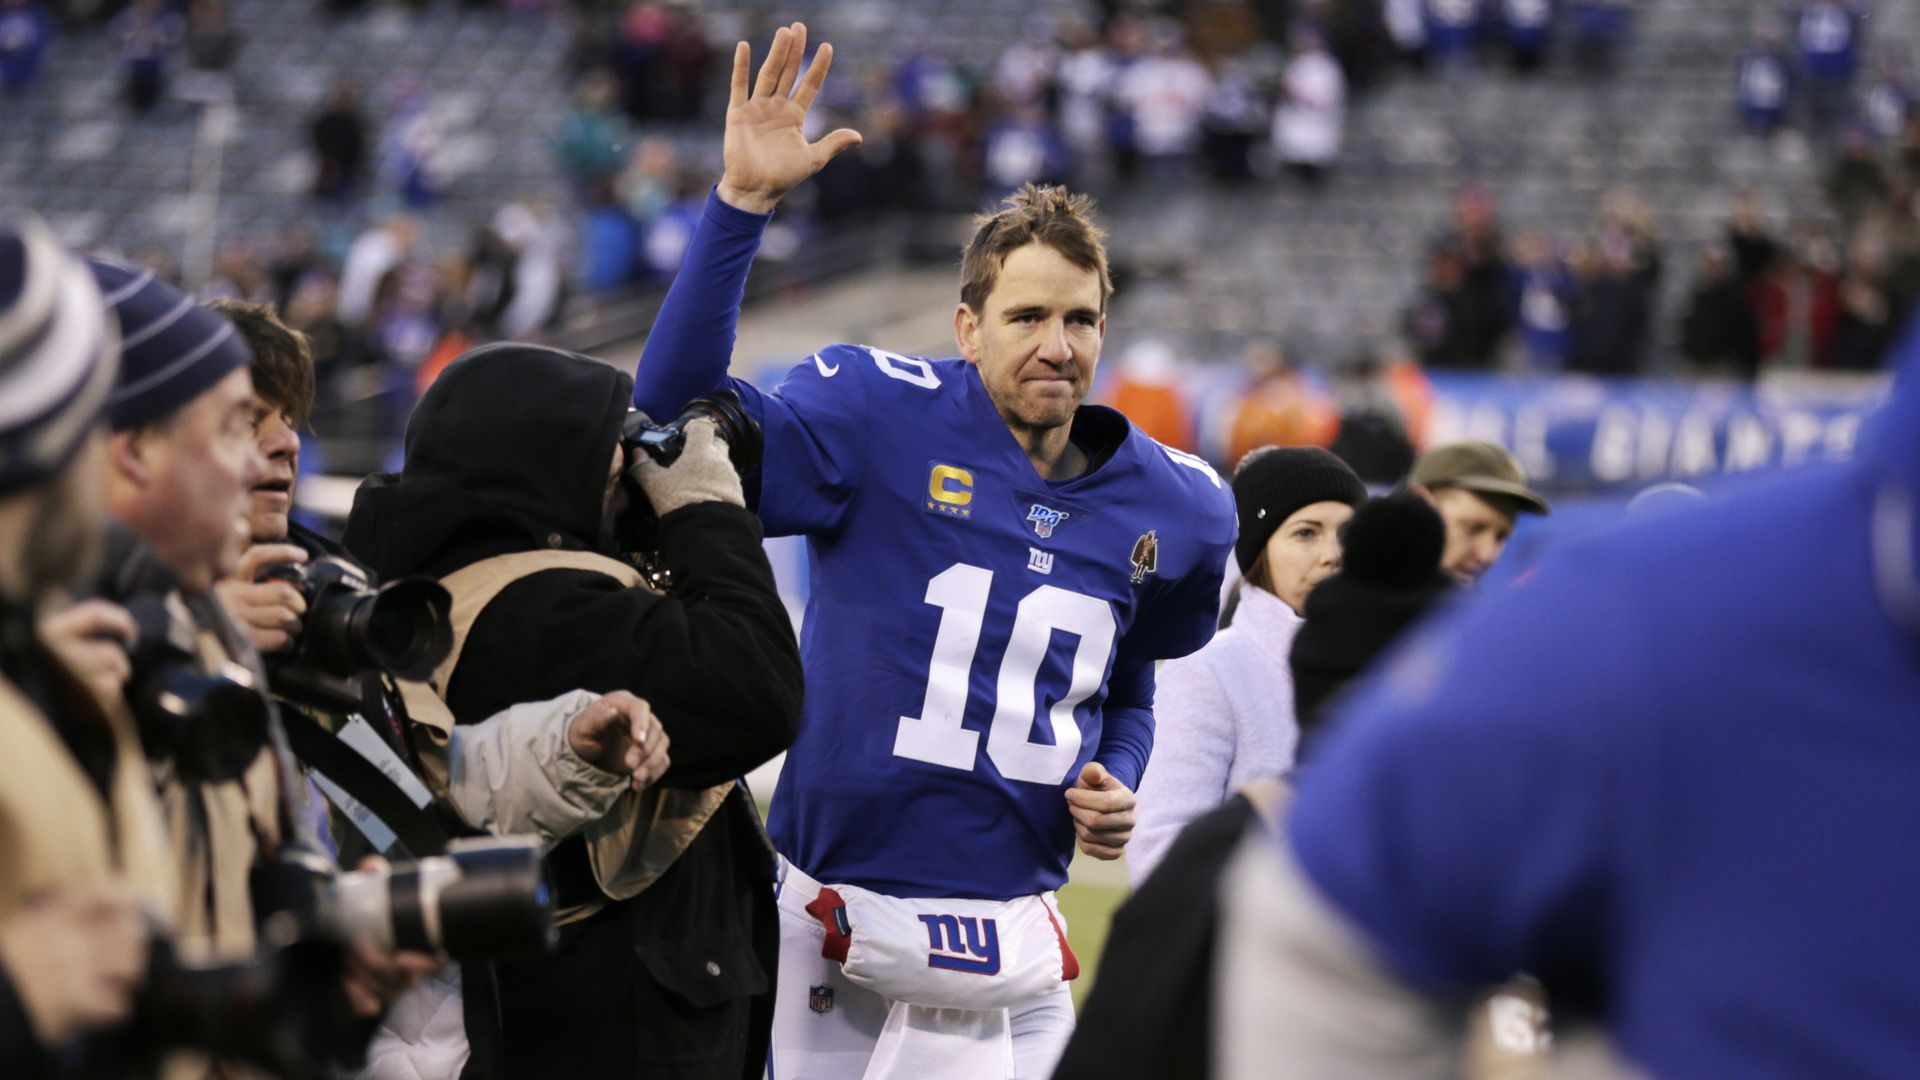 Eli Manning leaving Met Life Stadium after his last game in December